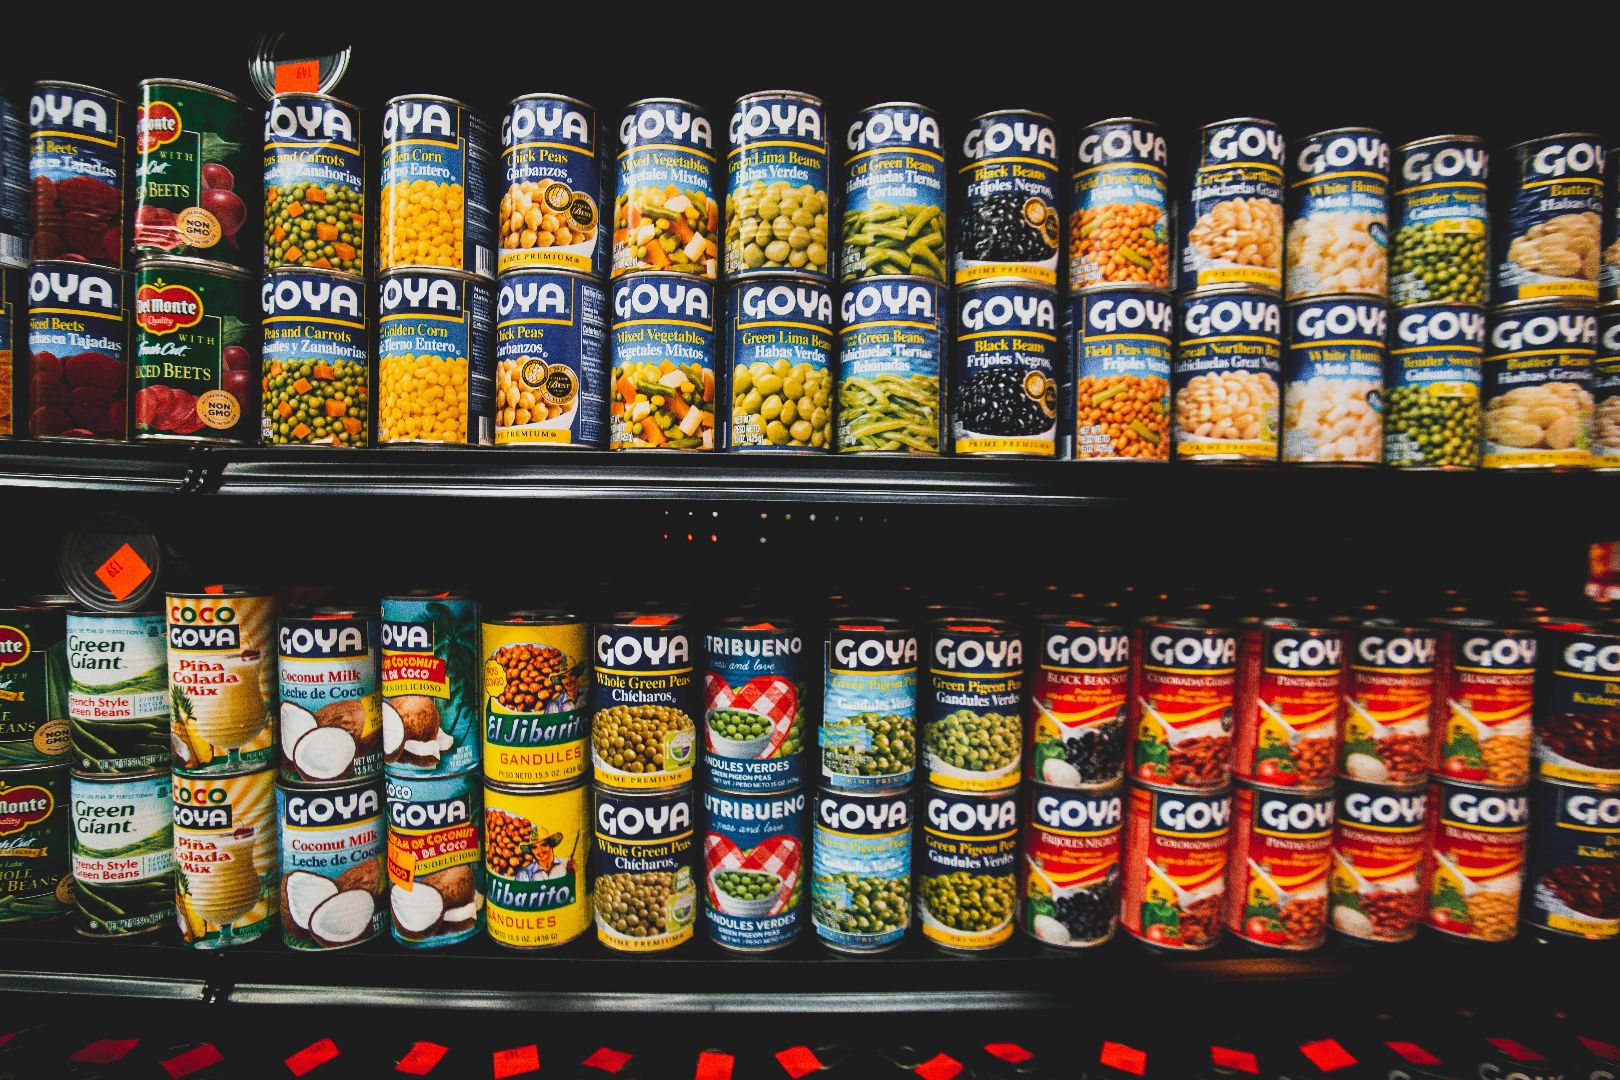 shelves of canned food